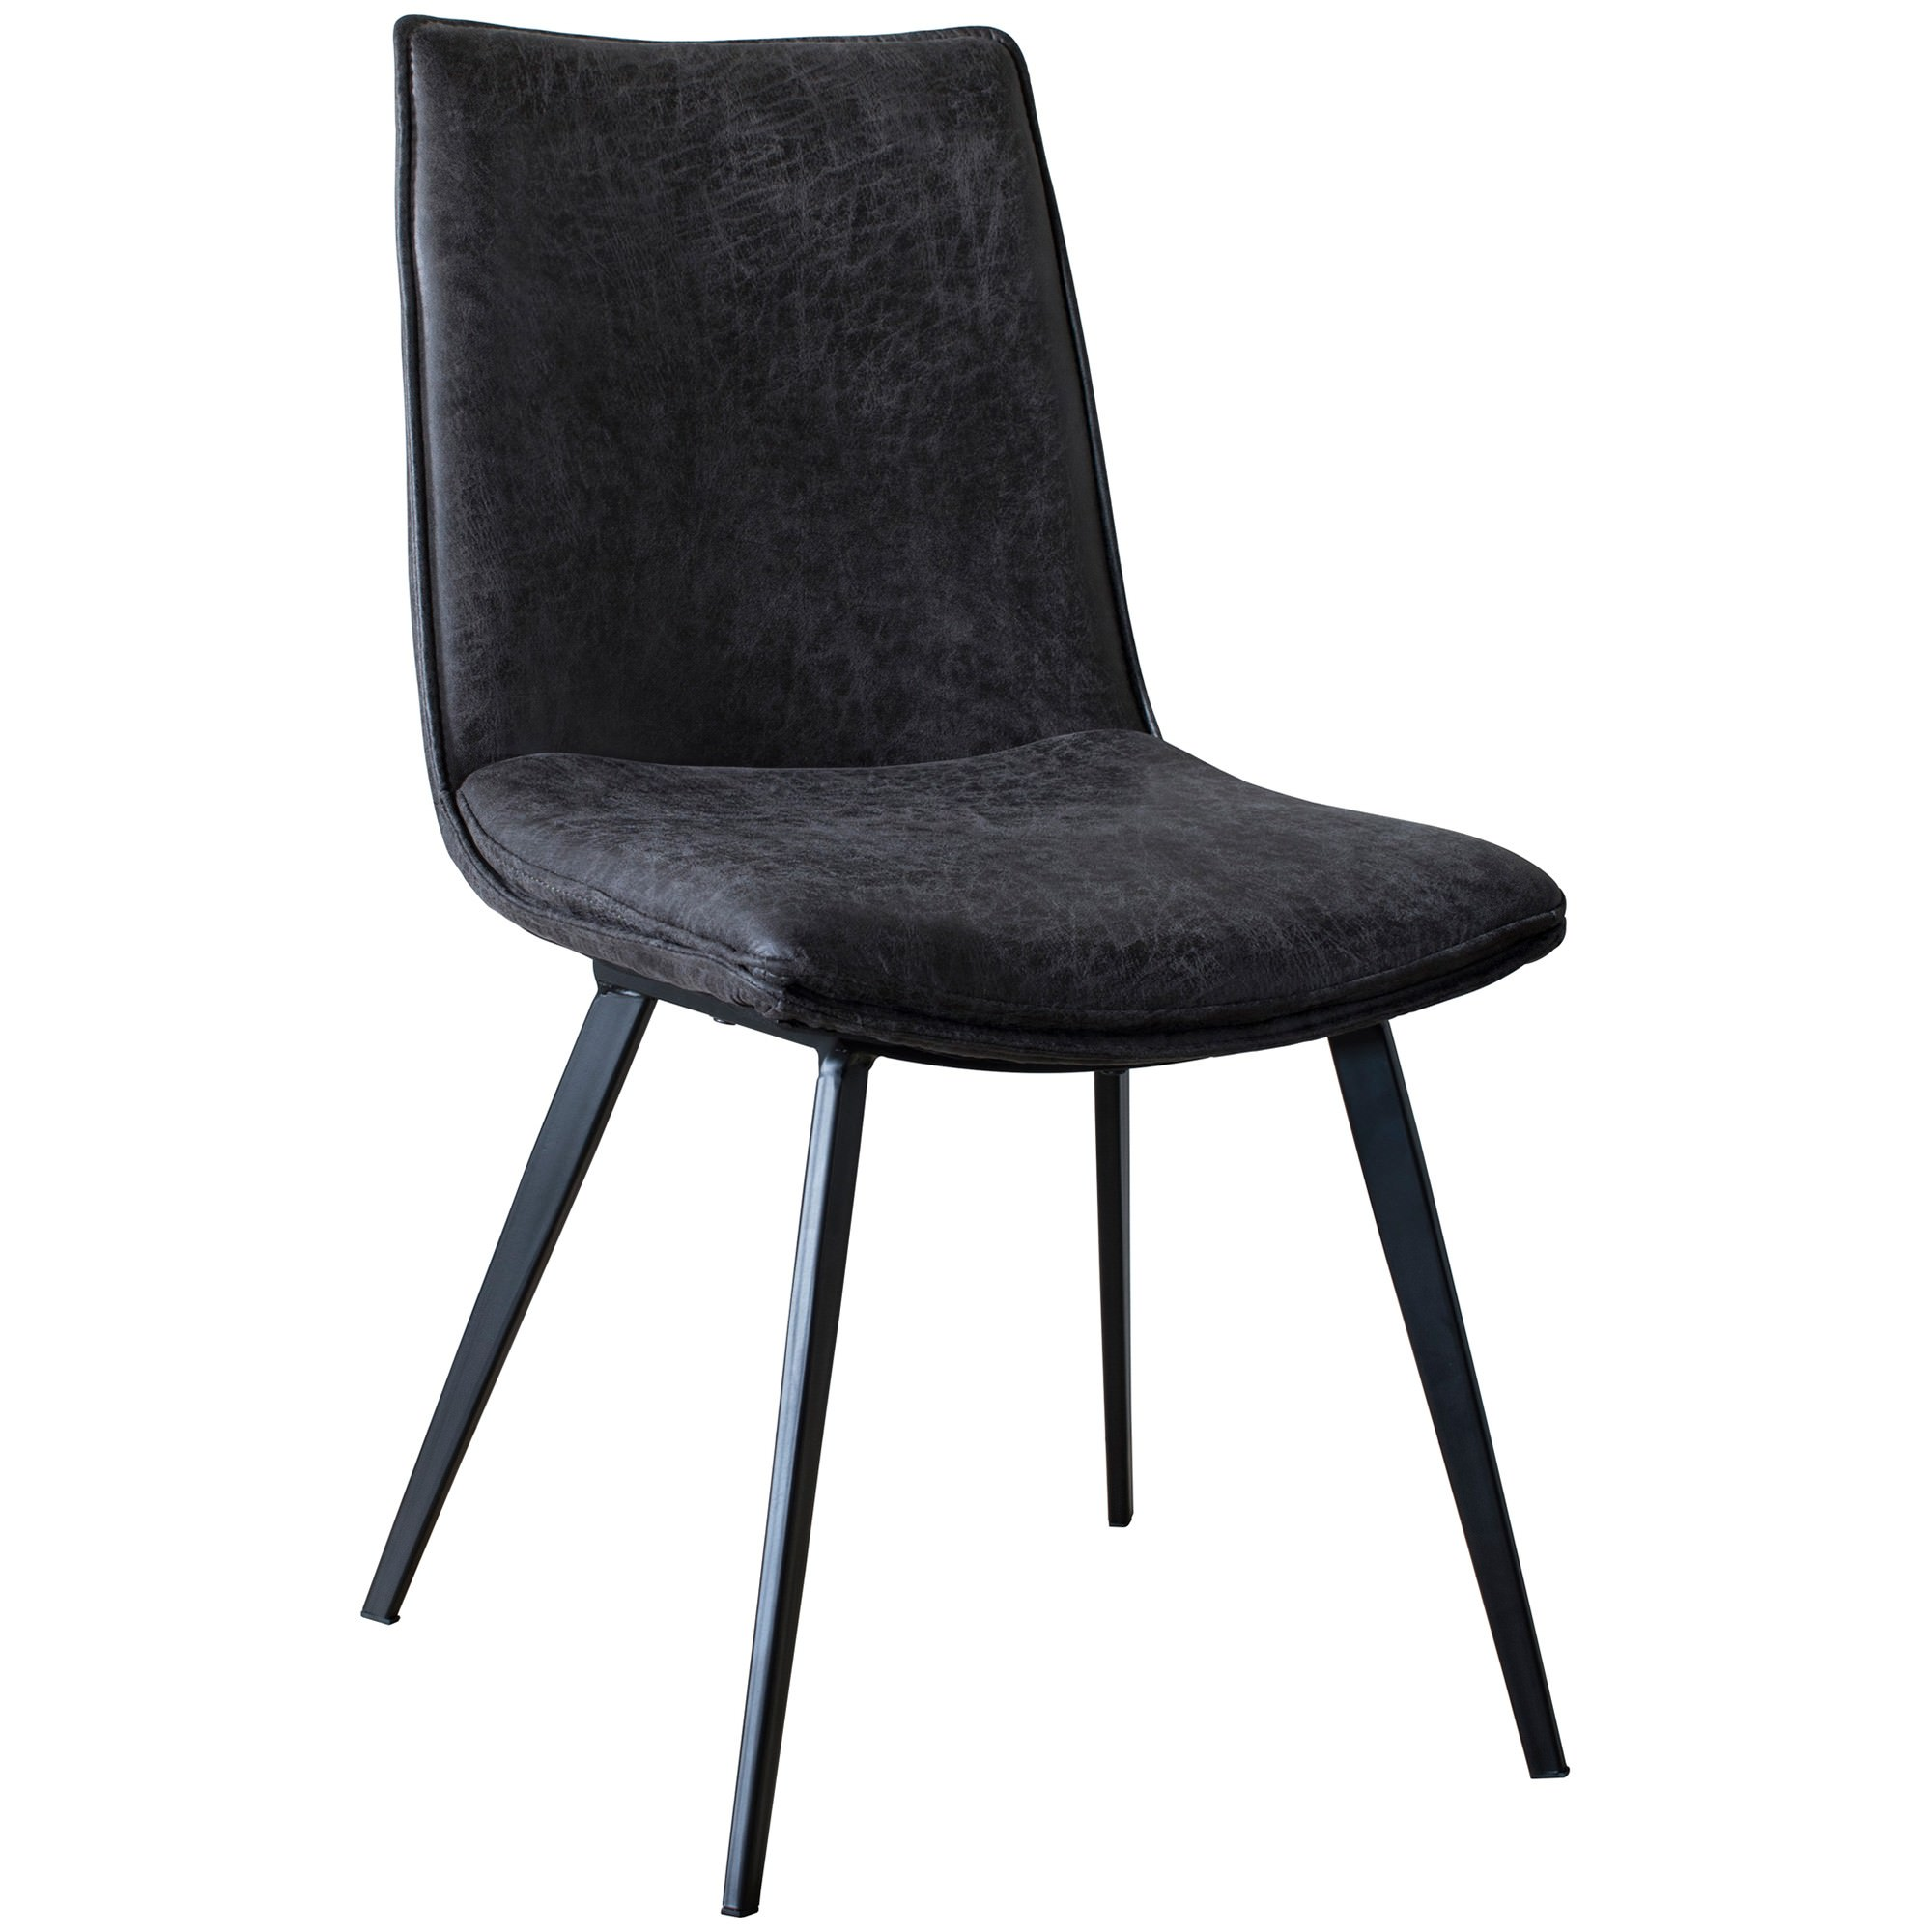 Henrik Faux Leather Dining Chair, Dark Grey